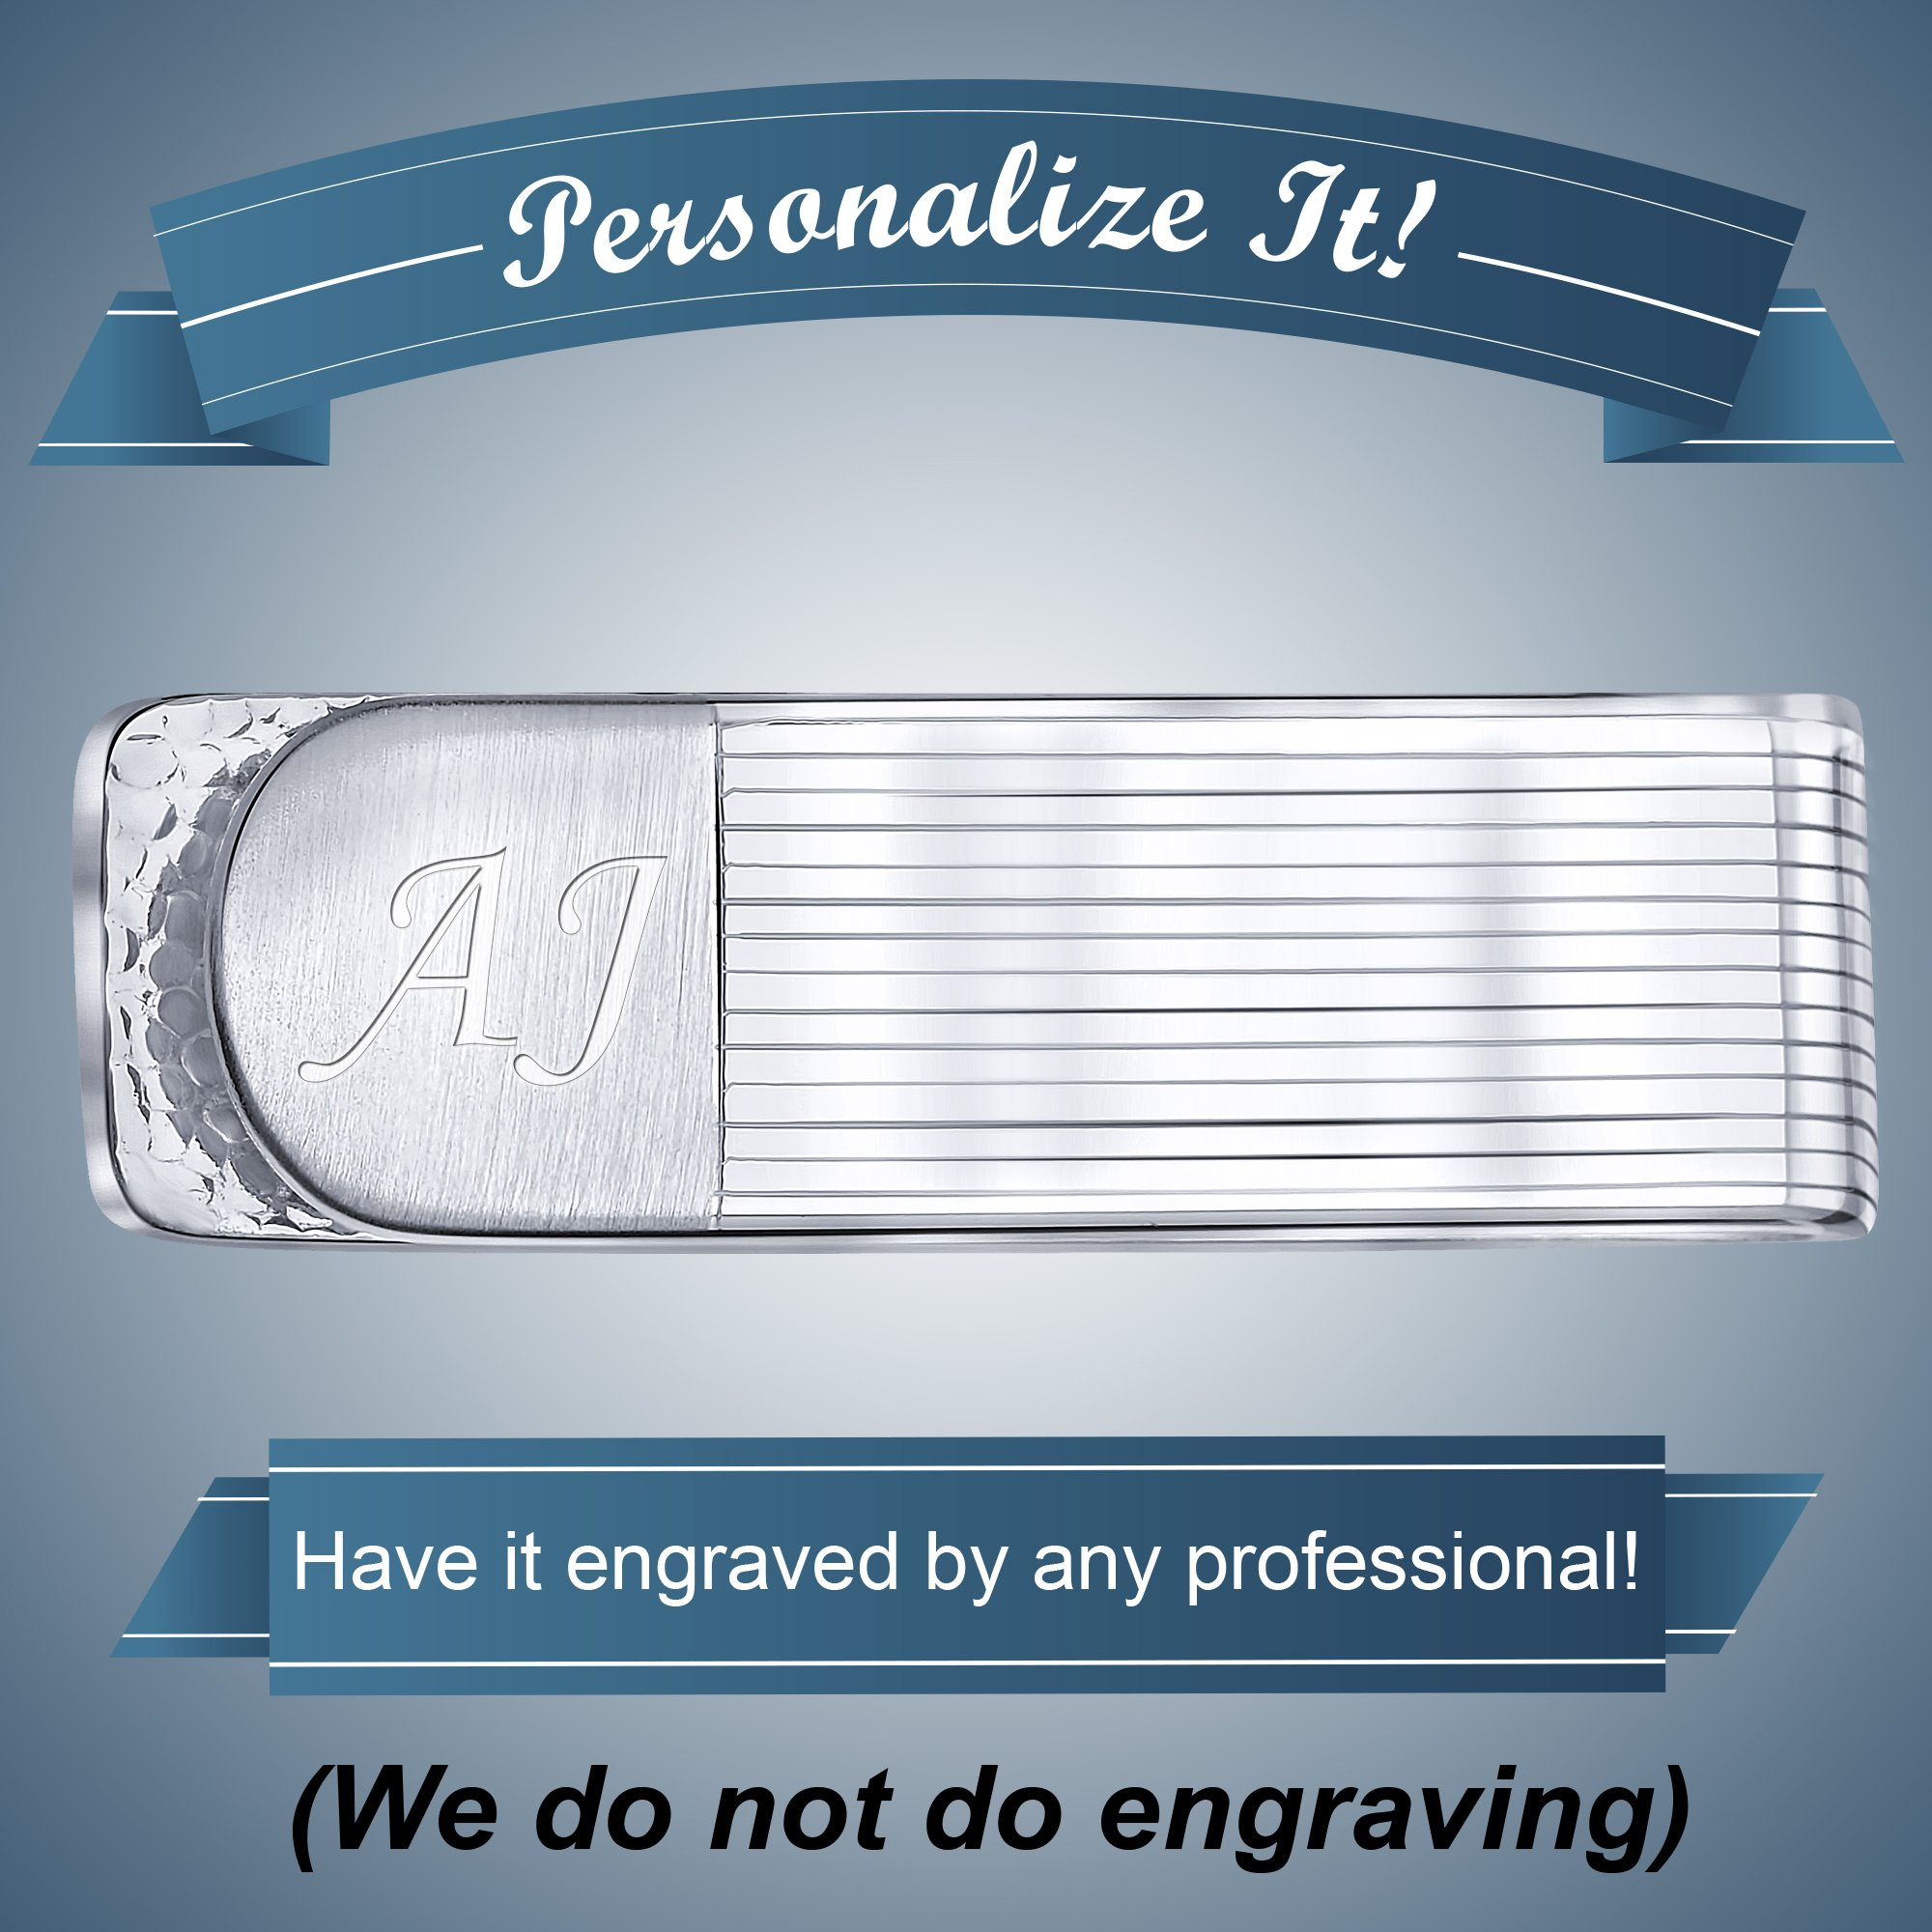 Sterling Silver .925 Money Clip Striped Design with Satin Finish Accent, Pebbled Underside. Designed and Made In Italy. By Sterling Manufacturers by Sterling Manufacturers (Image #4)